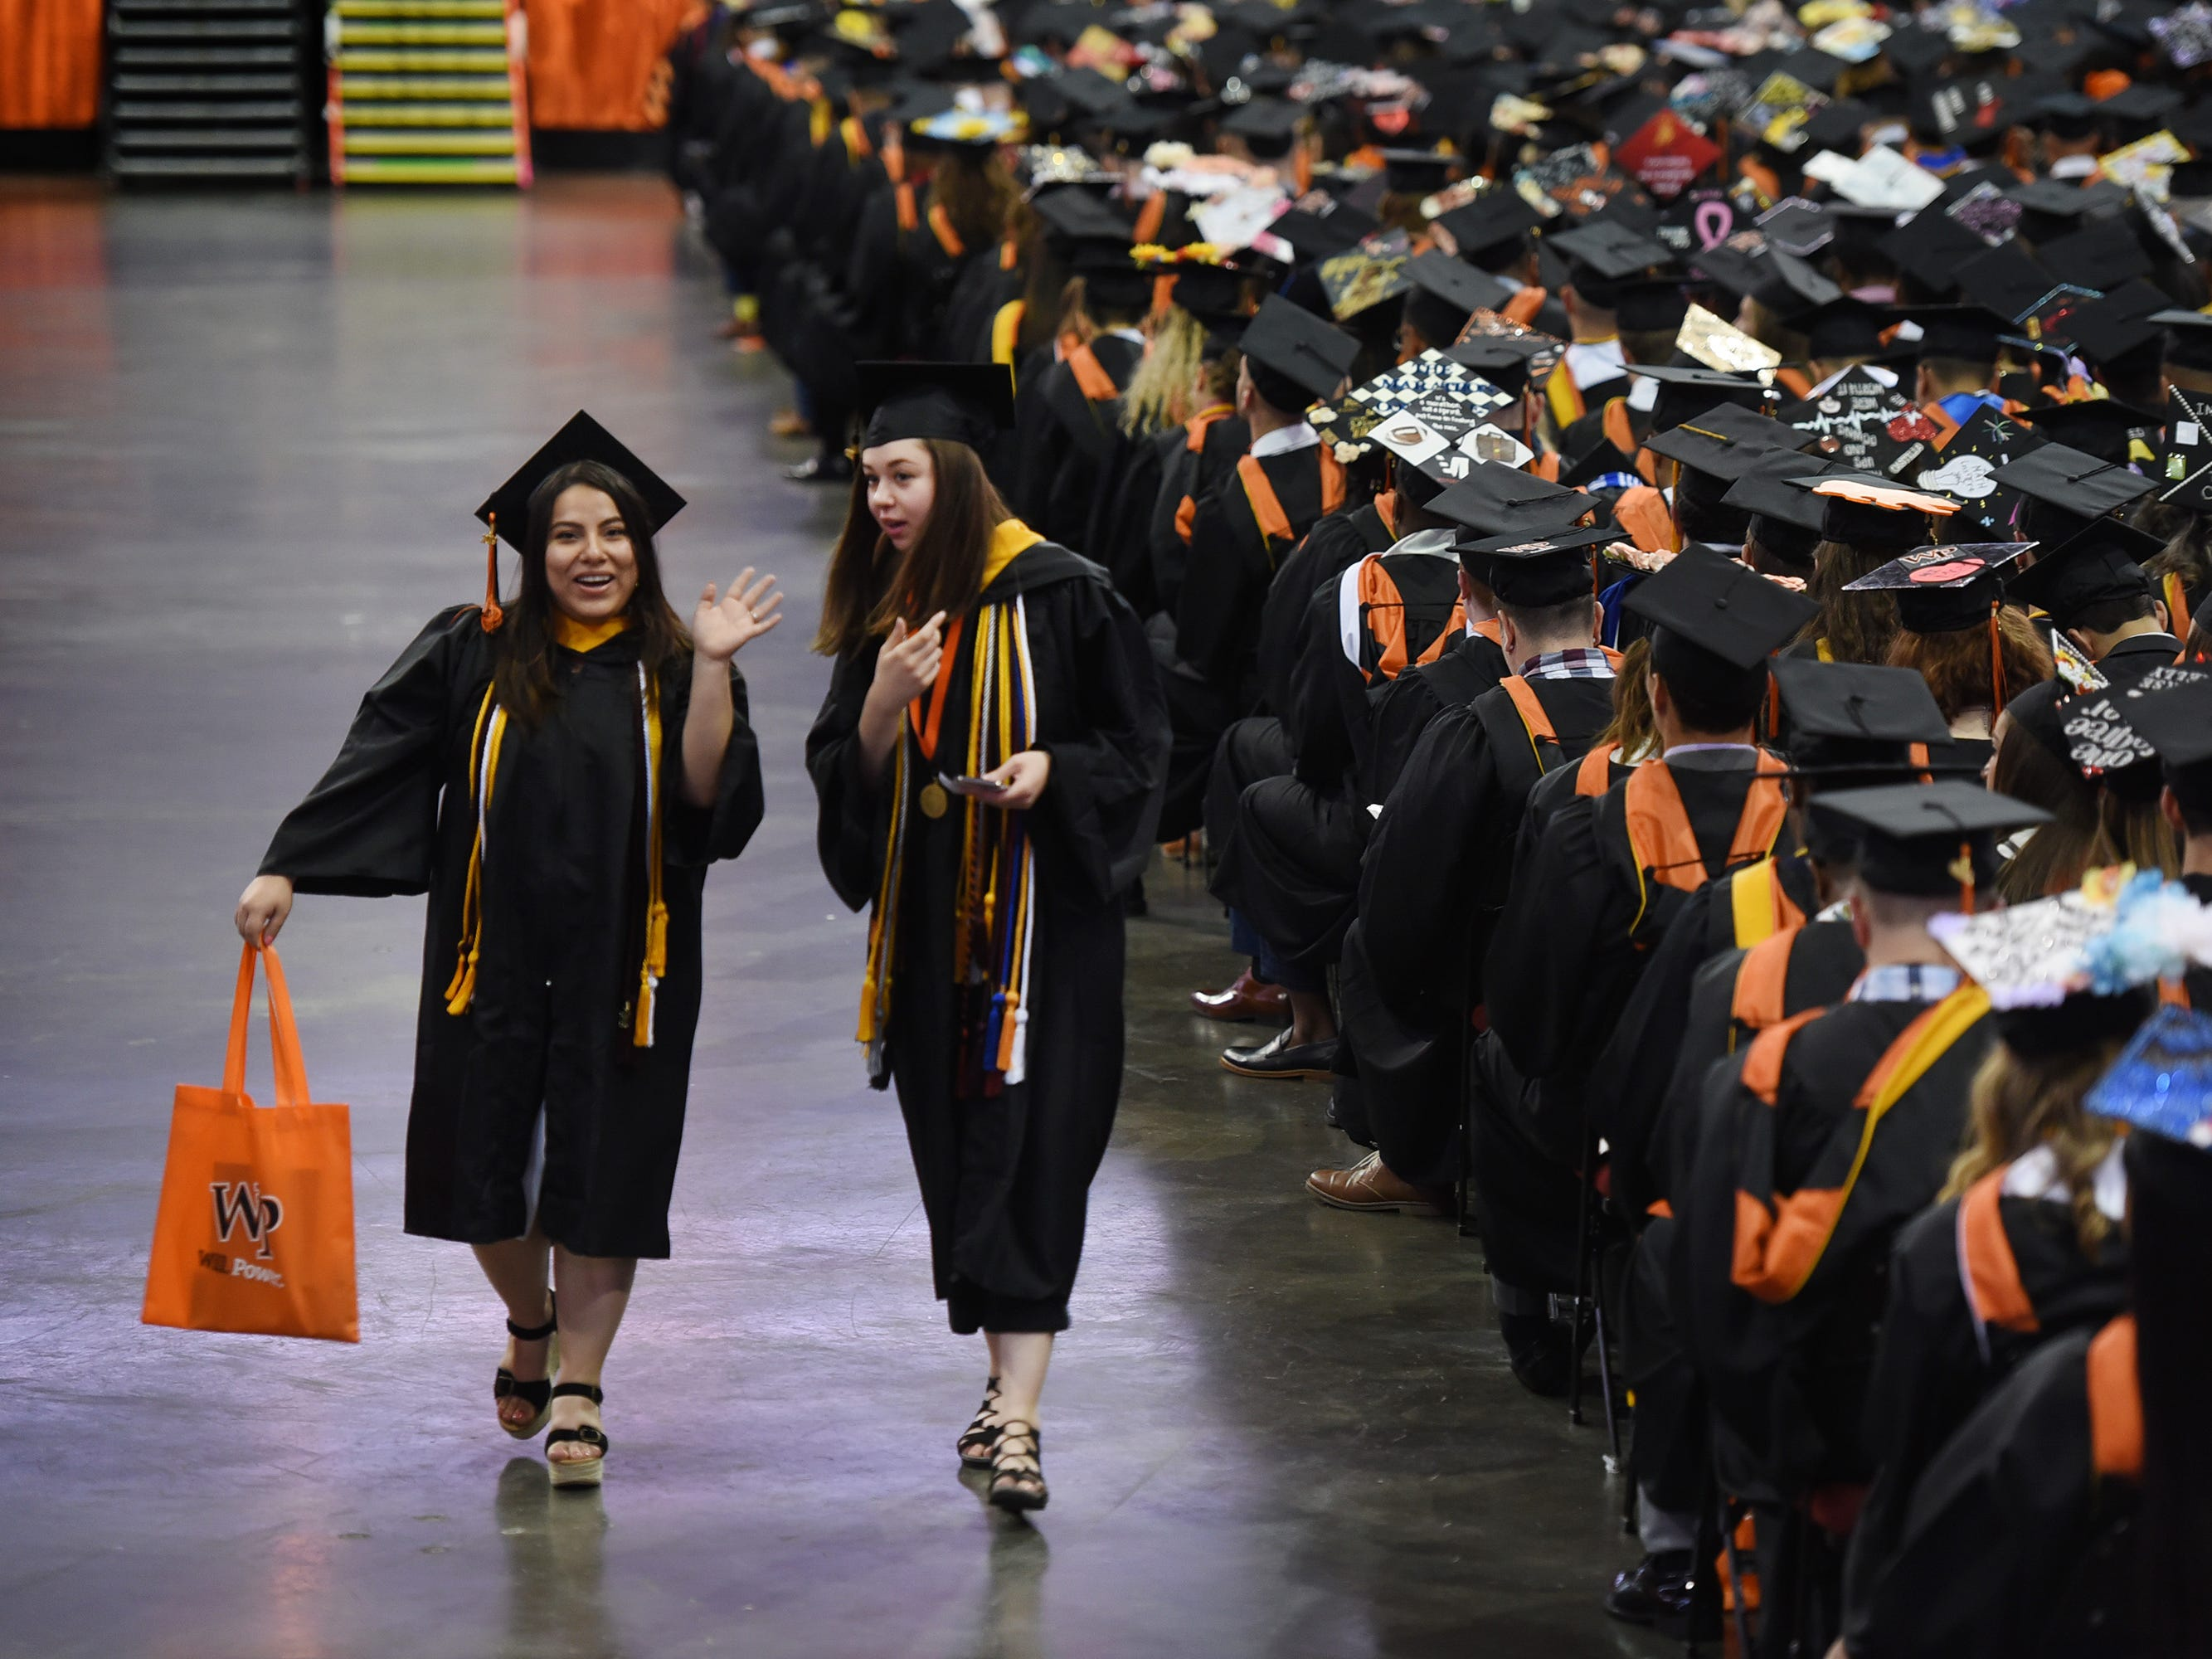 Ana Carysa Salazar (L) of Clifton and Sara Marianna Hope Steinel (R) of Parsippany, both Computer Science Majors, step out from the line during the William Paterson University 2019 Commencement at the Prudential Center in Newark on 05/15/19.